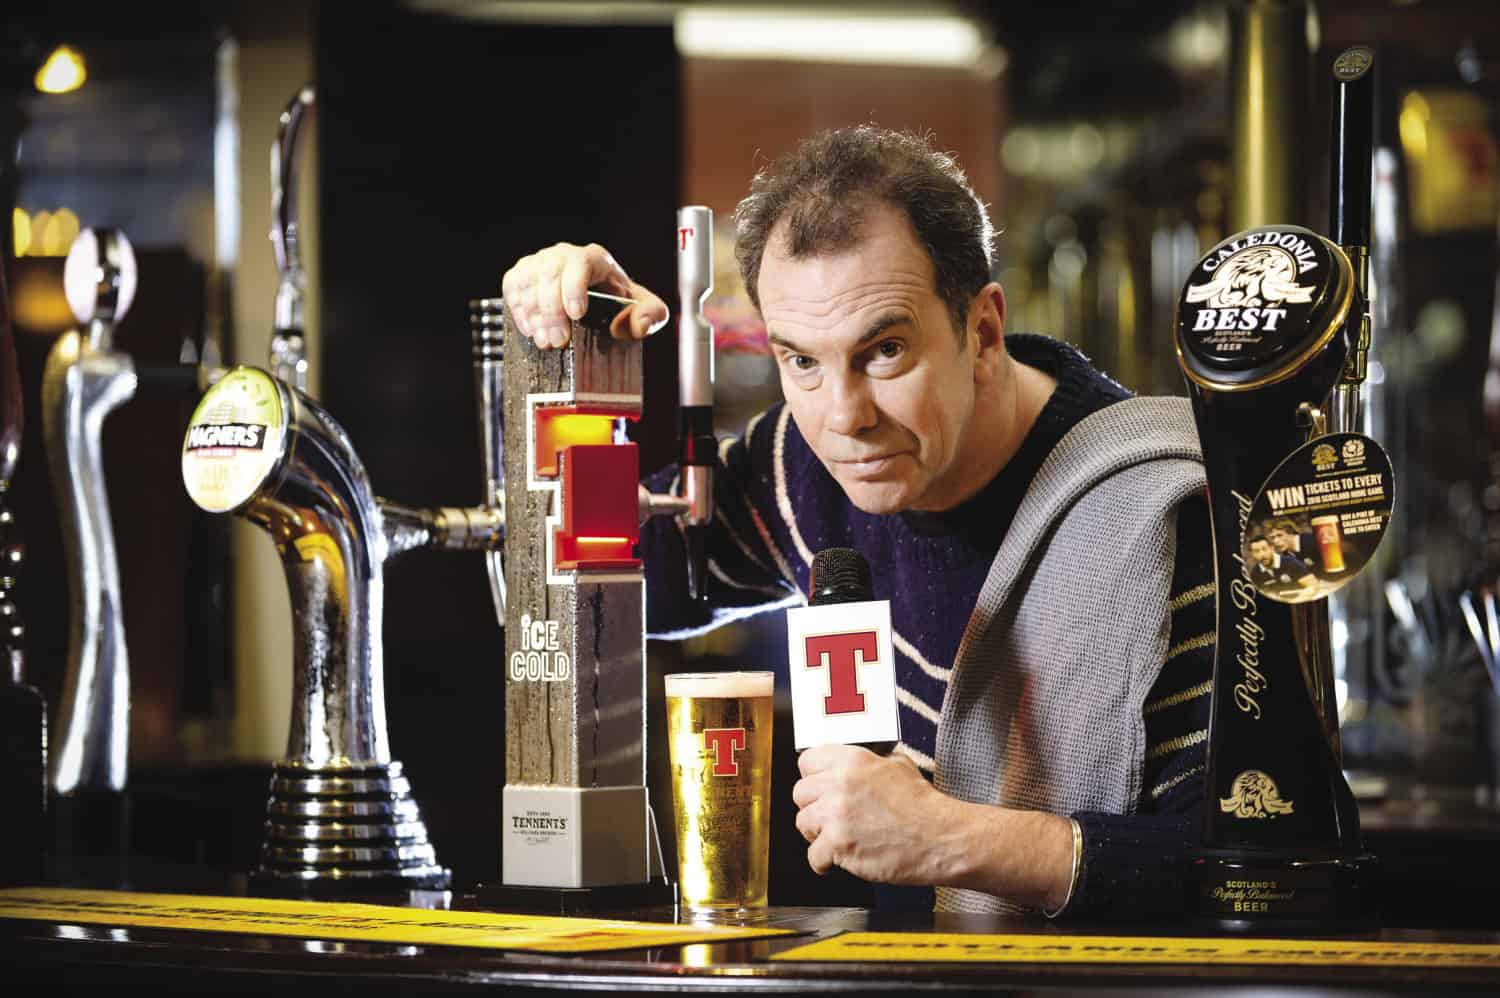 Boaby the Barman lends opt